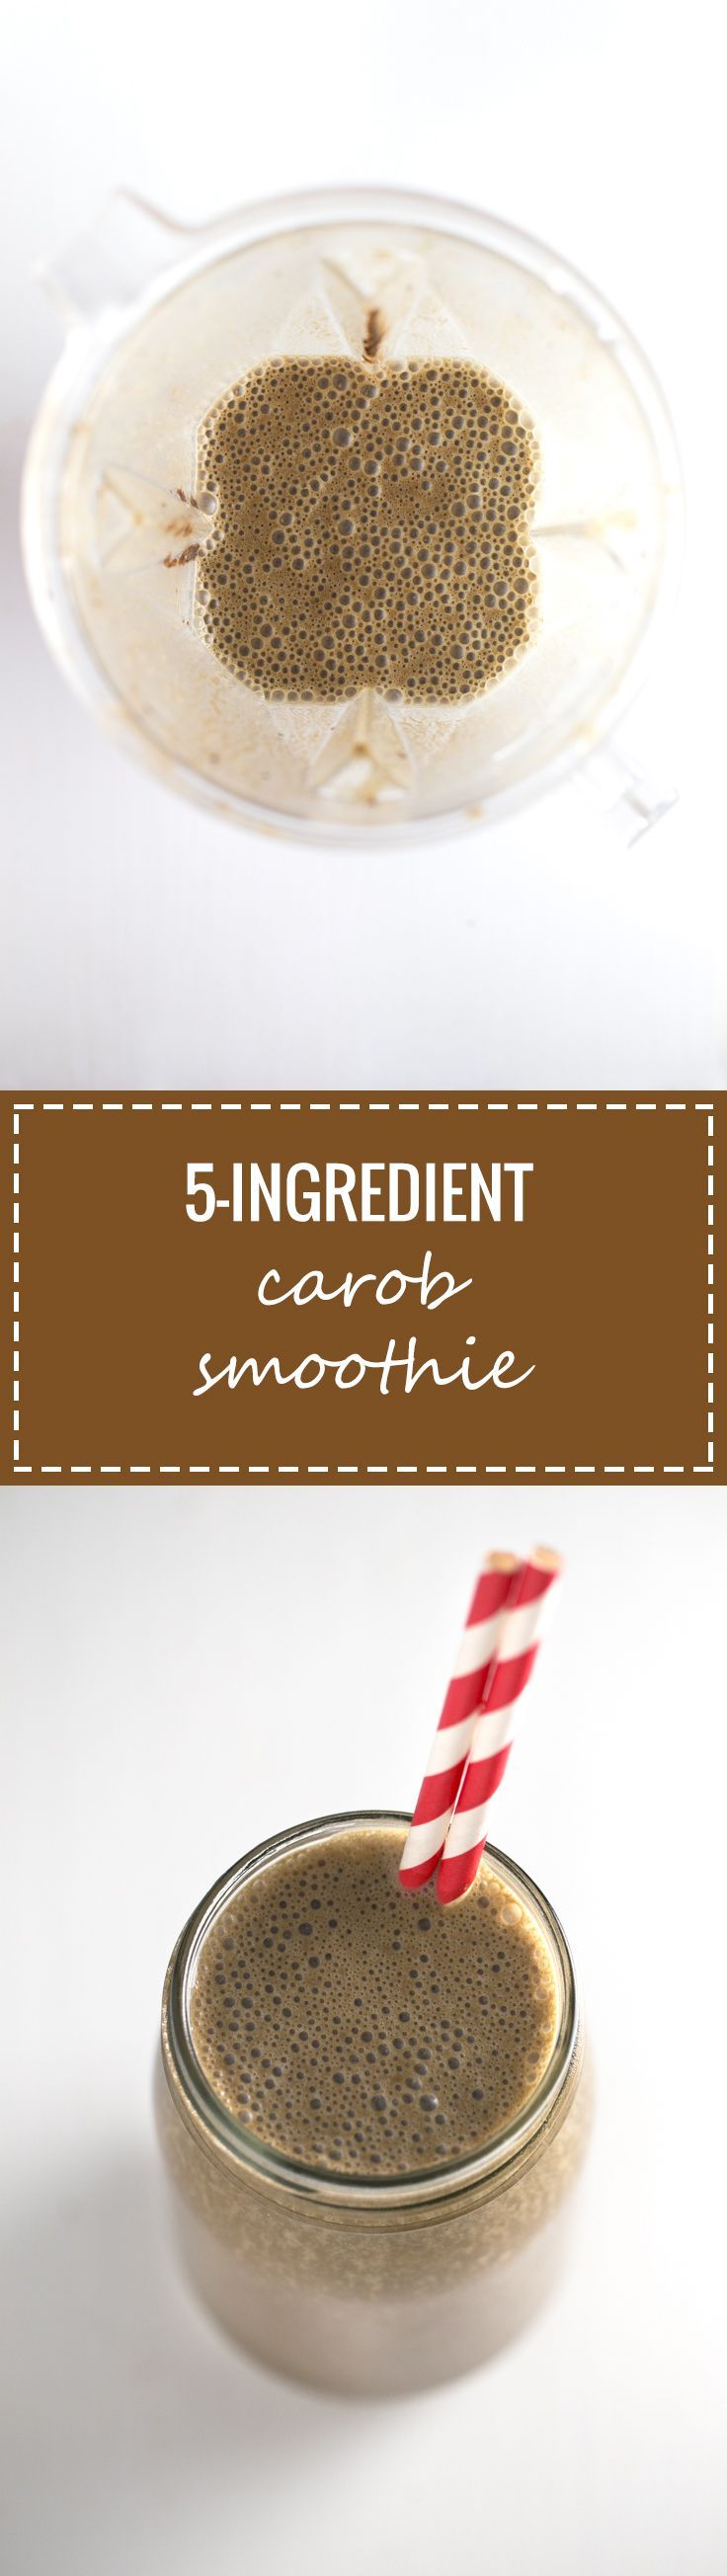 I make this 5-ingredient carob green smoothie all the time! It's so convenient to eat on the go, you just need to store it in a glass jar.